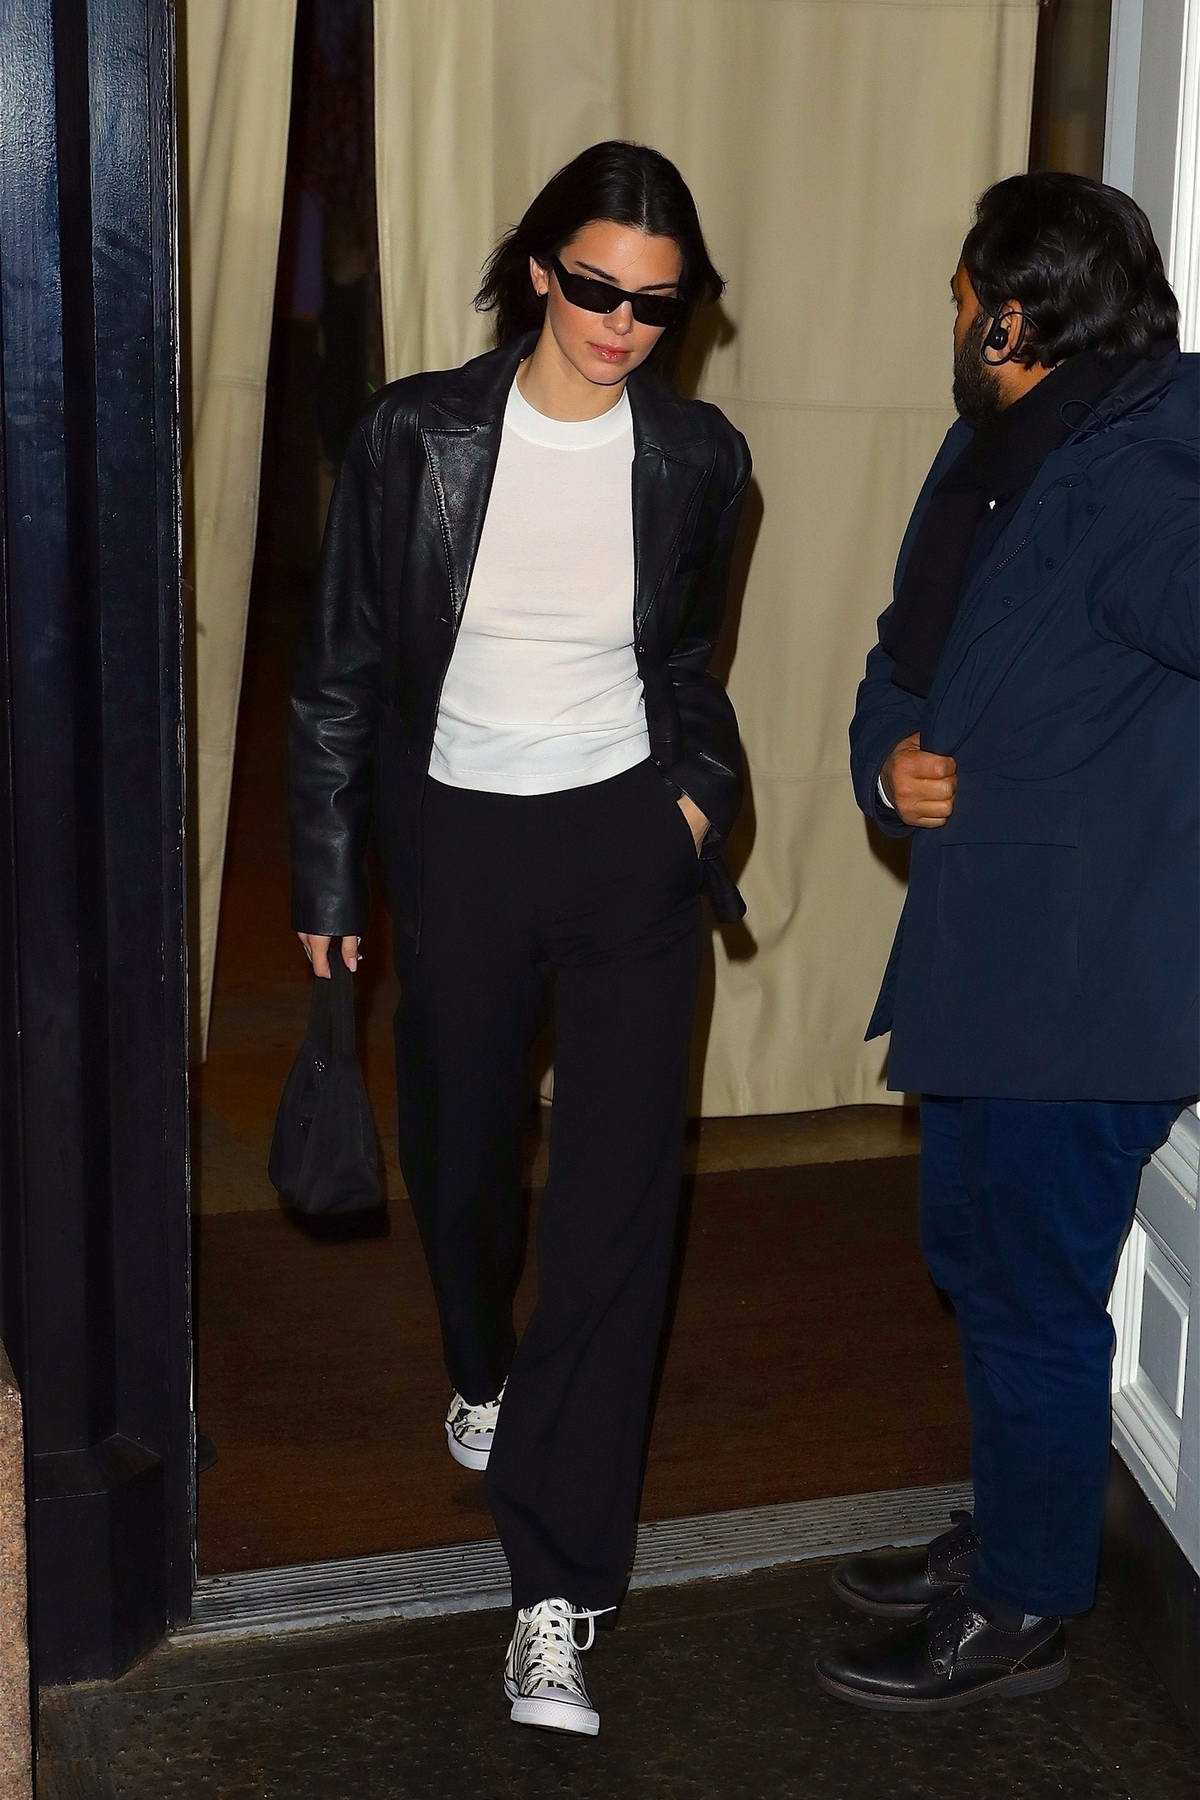 Kendall Jenner looks trendy in a black leather blazer as she heads out of her hotel in SoHo, New York City